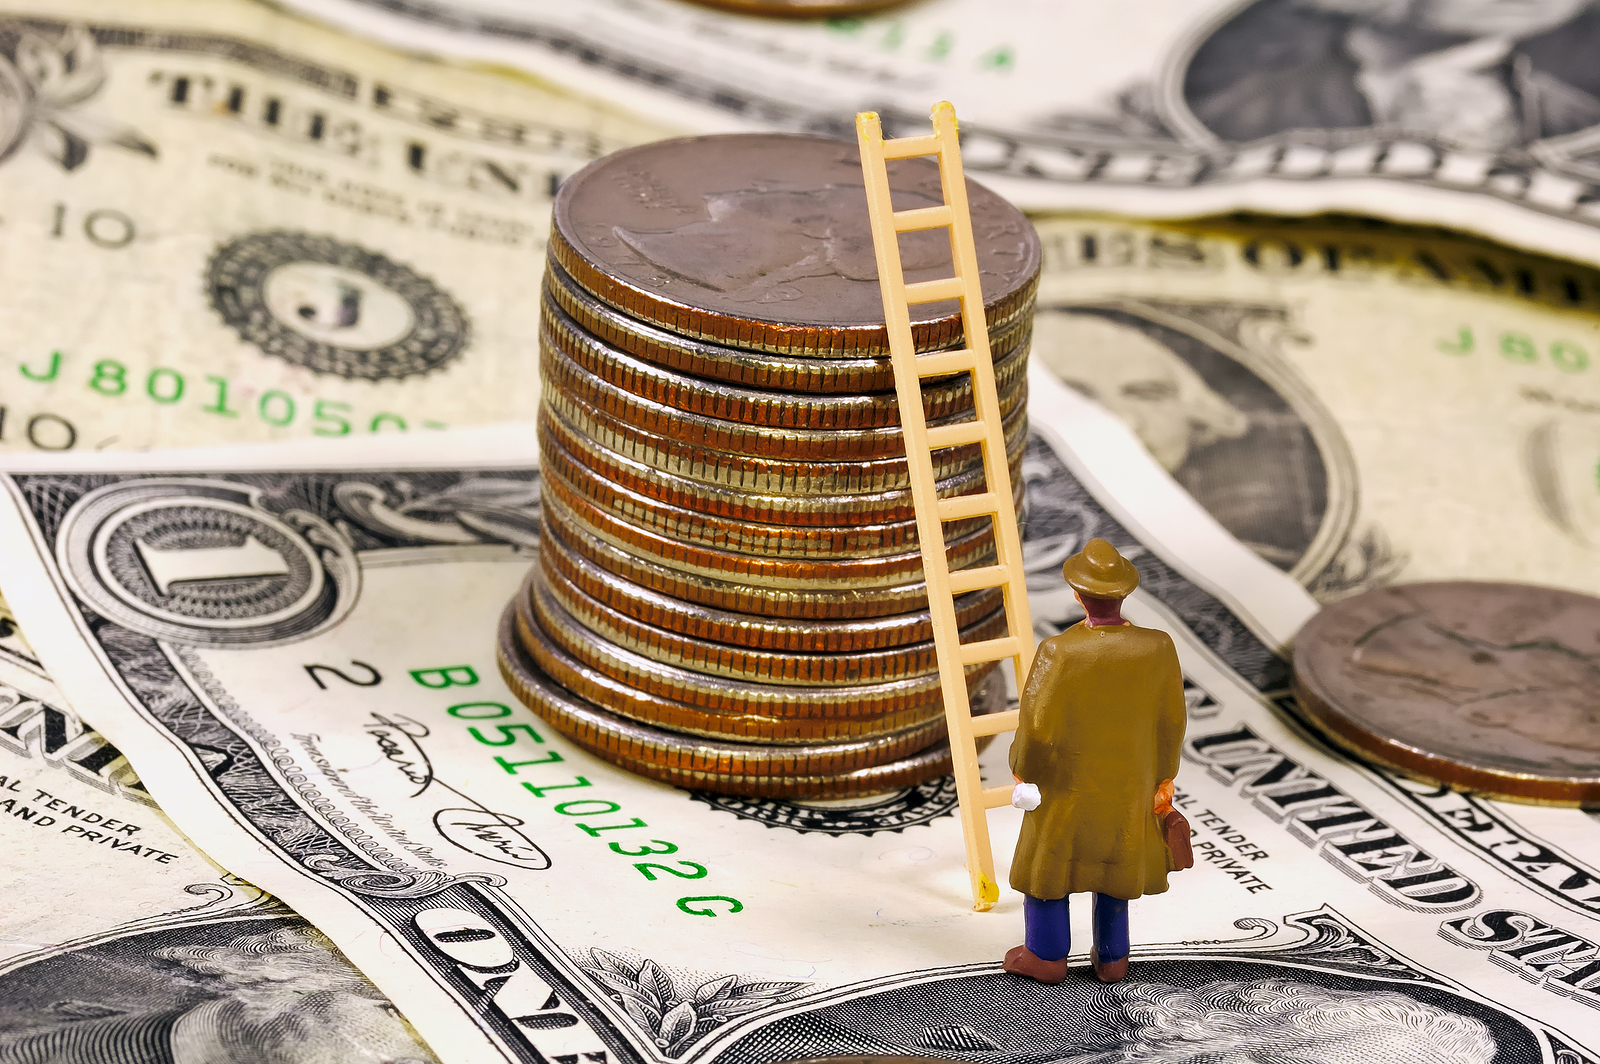 Climbing the Ladder of Philanthropy